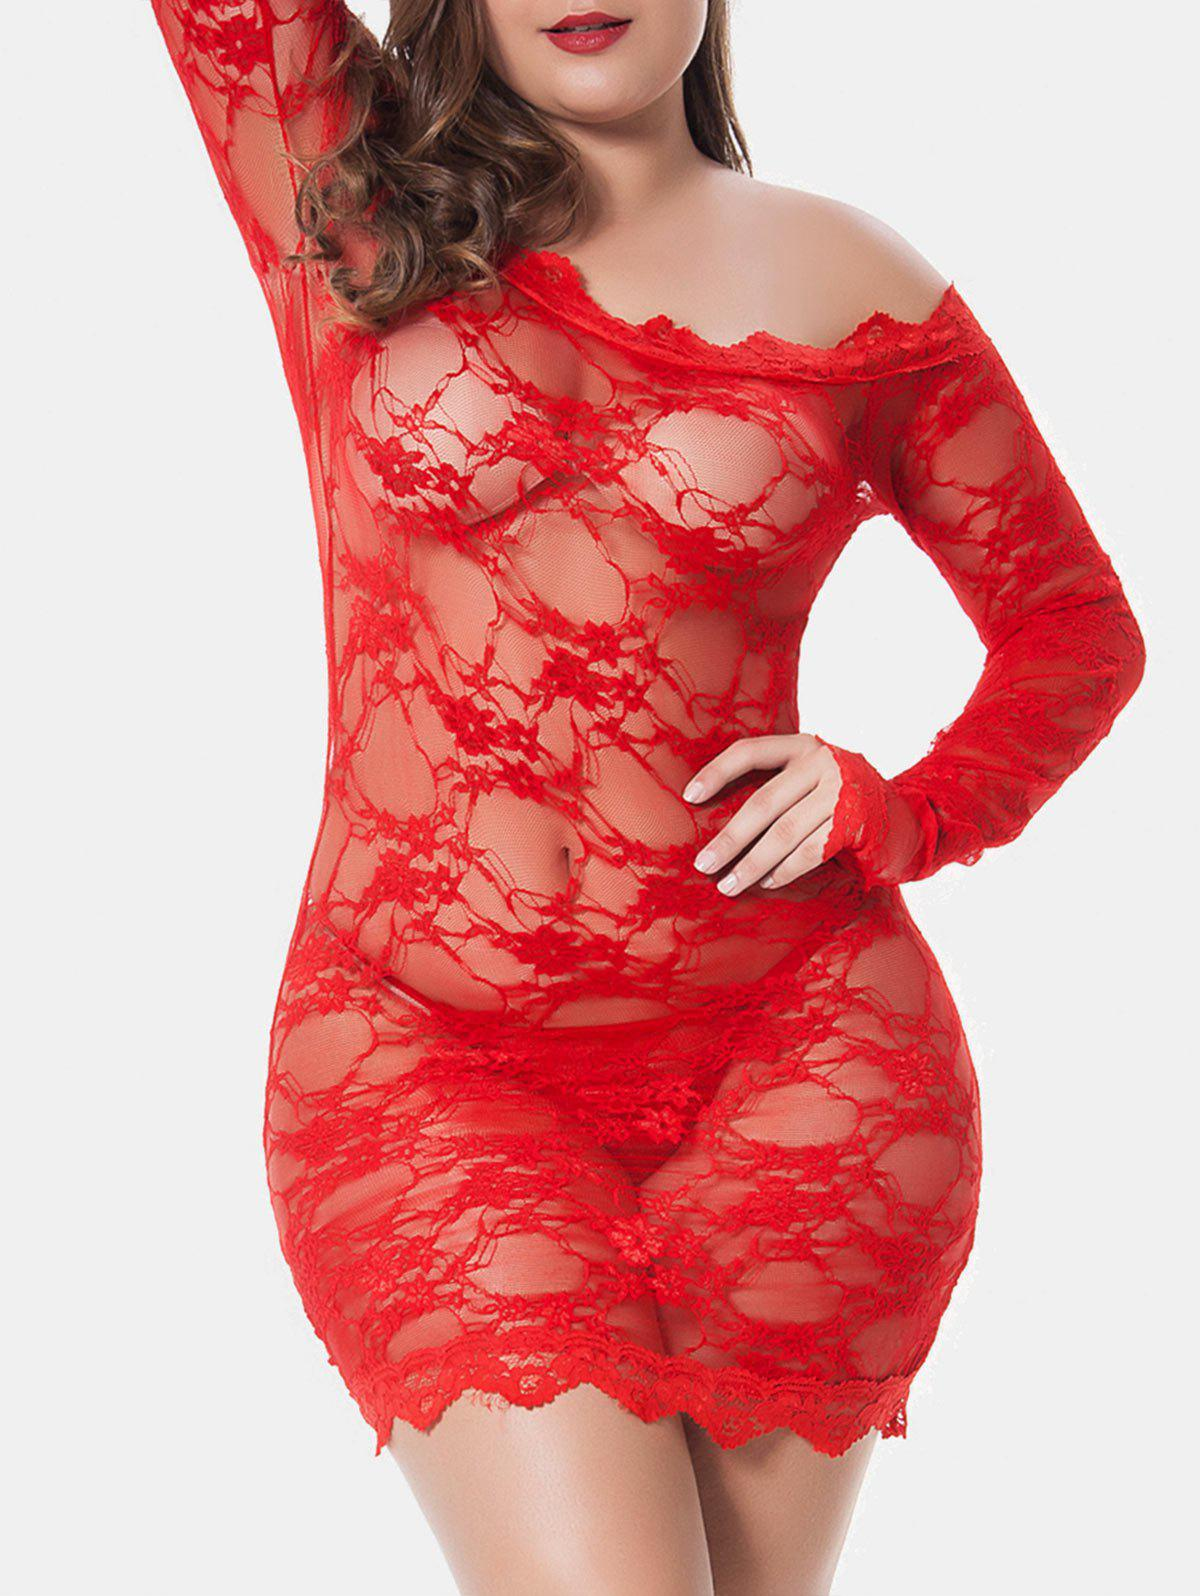 Plus Size Scalloped Sheer Lingerie Dress - RED 5X